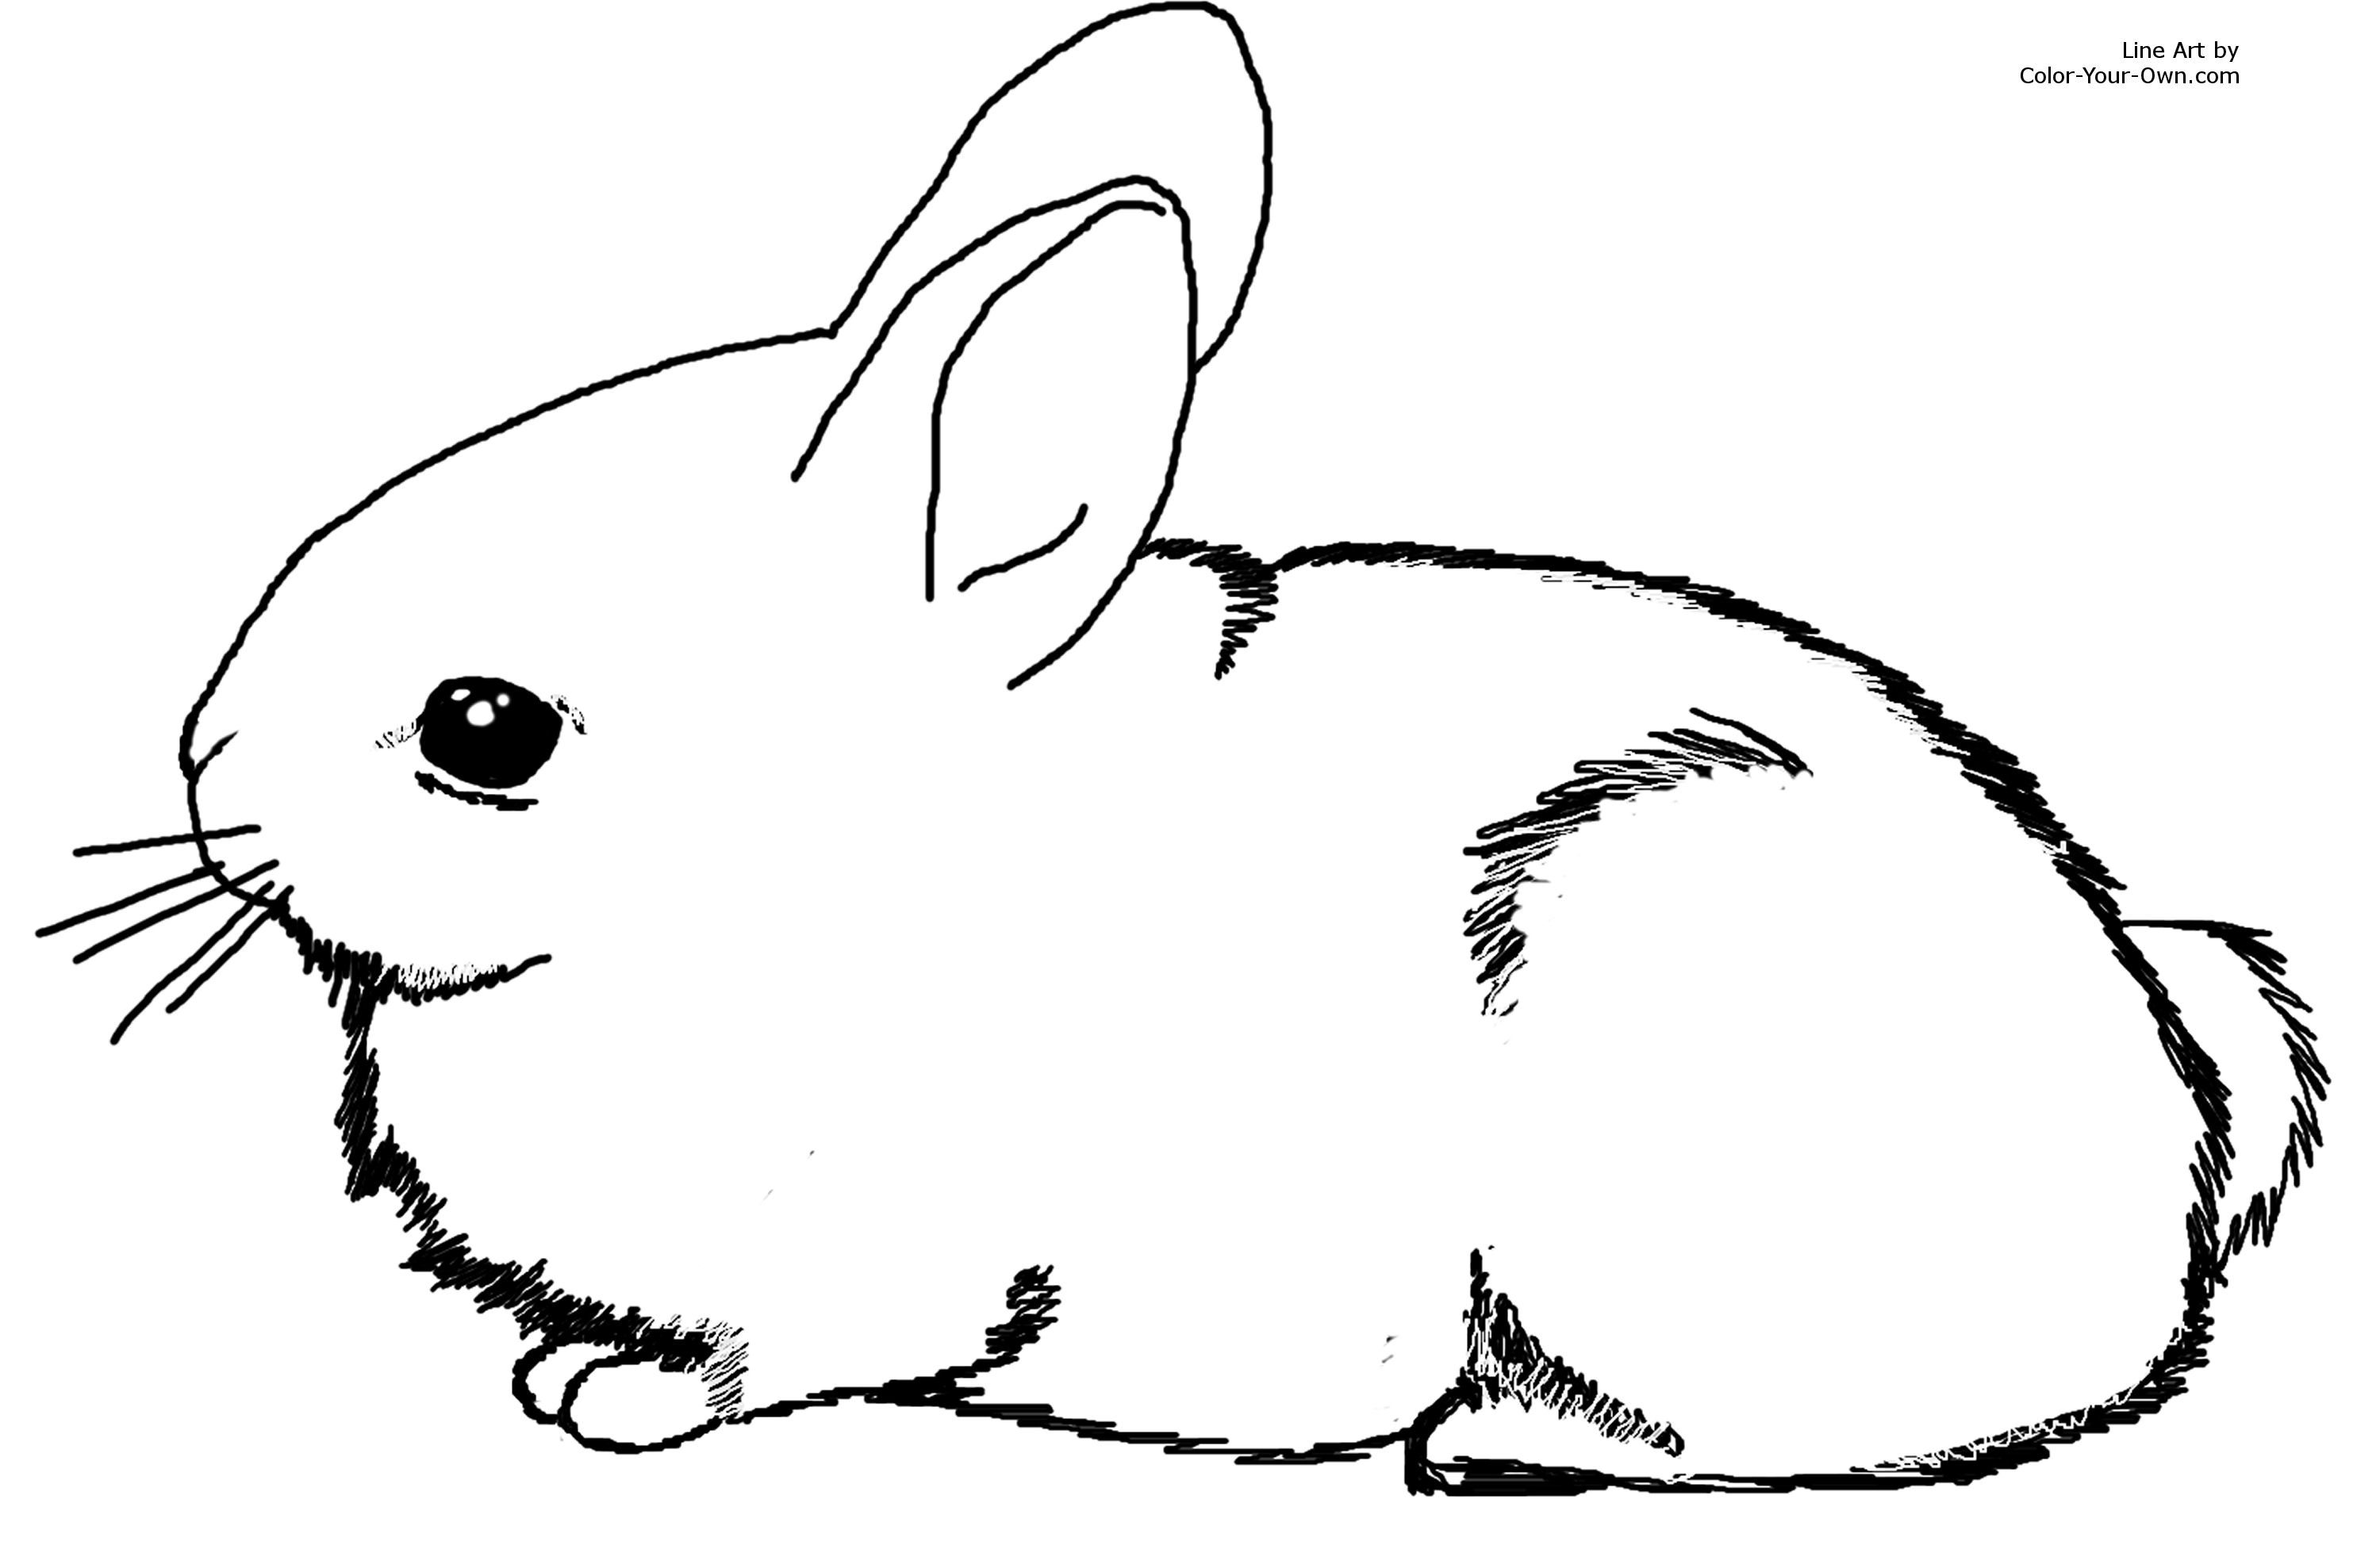 bunny coloring pages free coloring pages of a rabbit printable free coloring sheets bunny coloring pages free